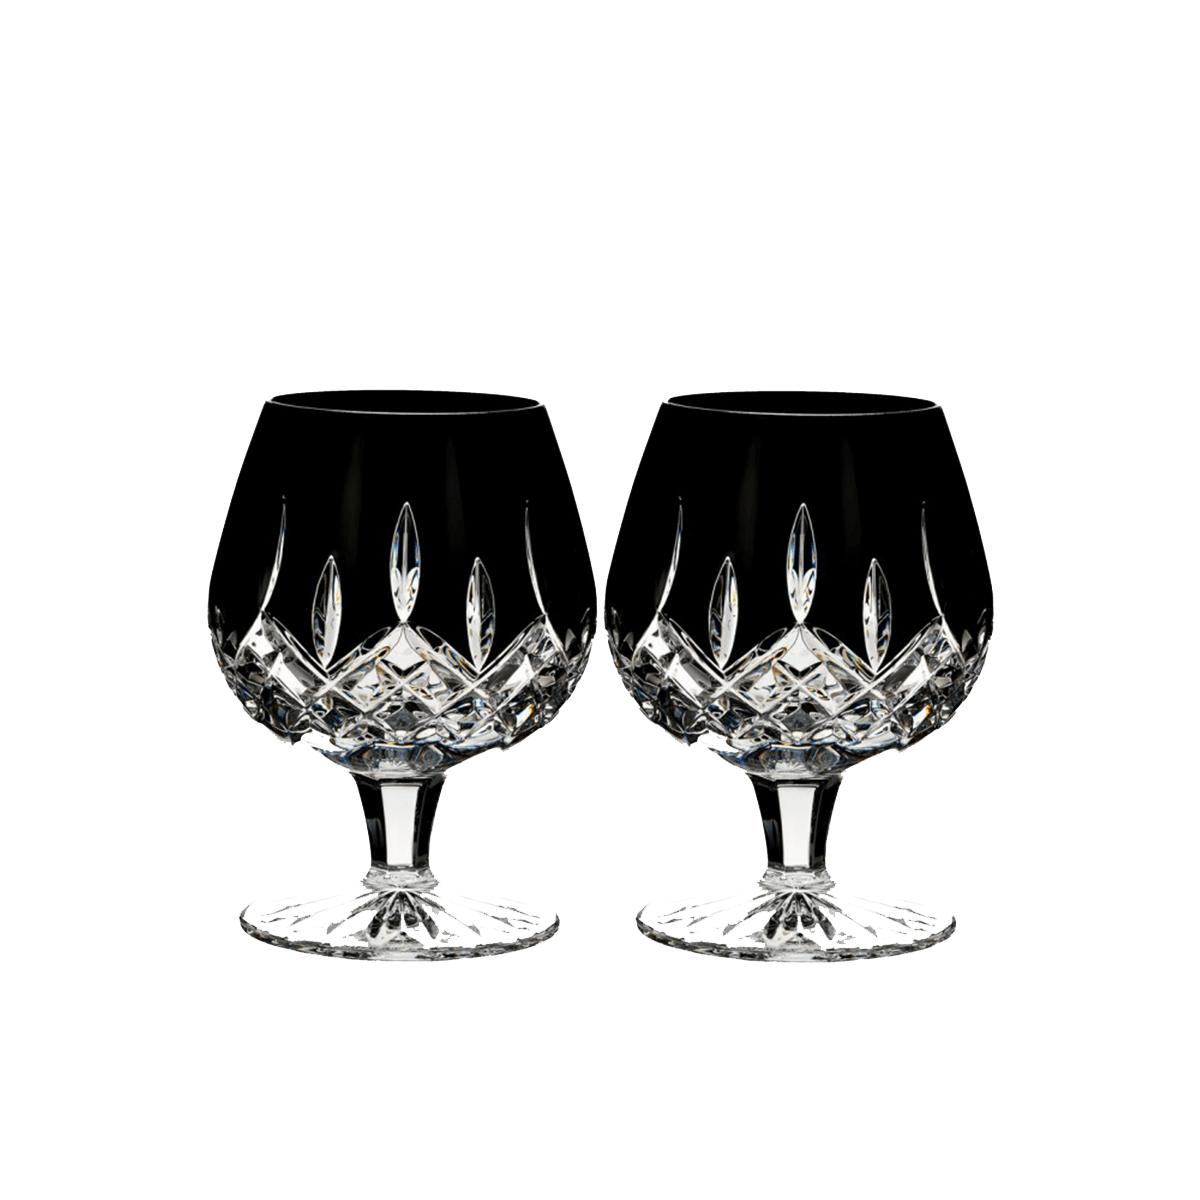 Lismore Black Brandy Glasses